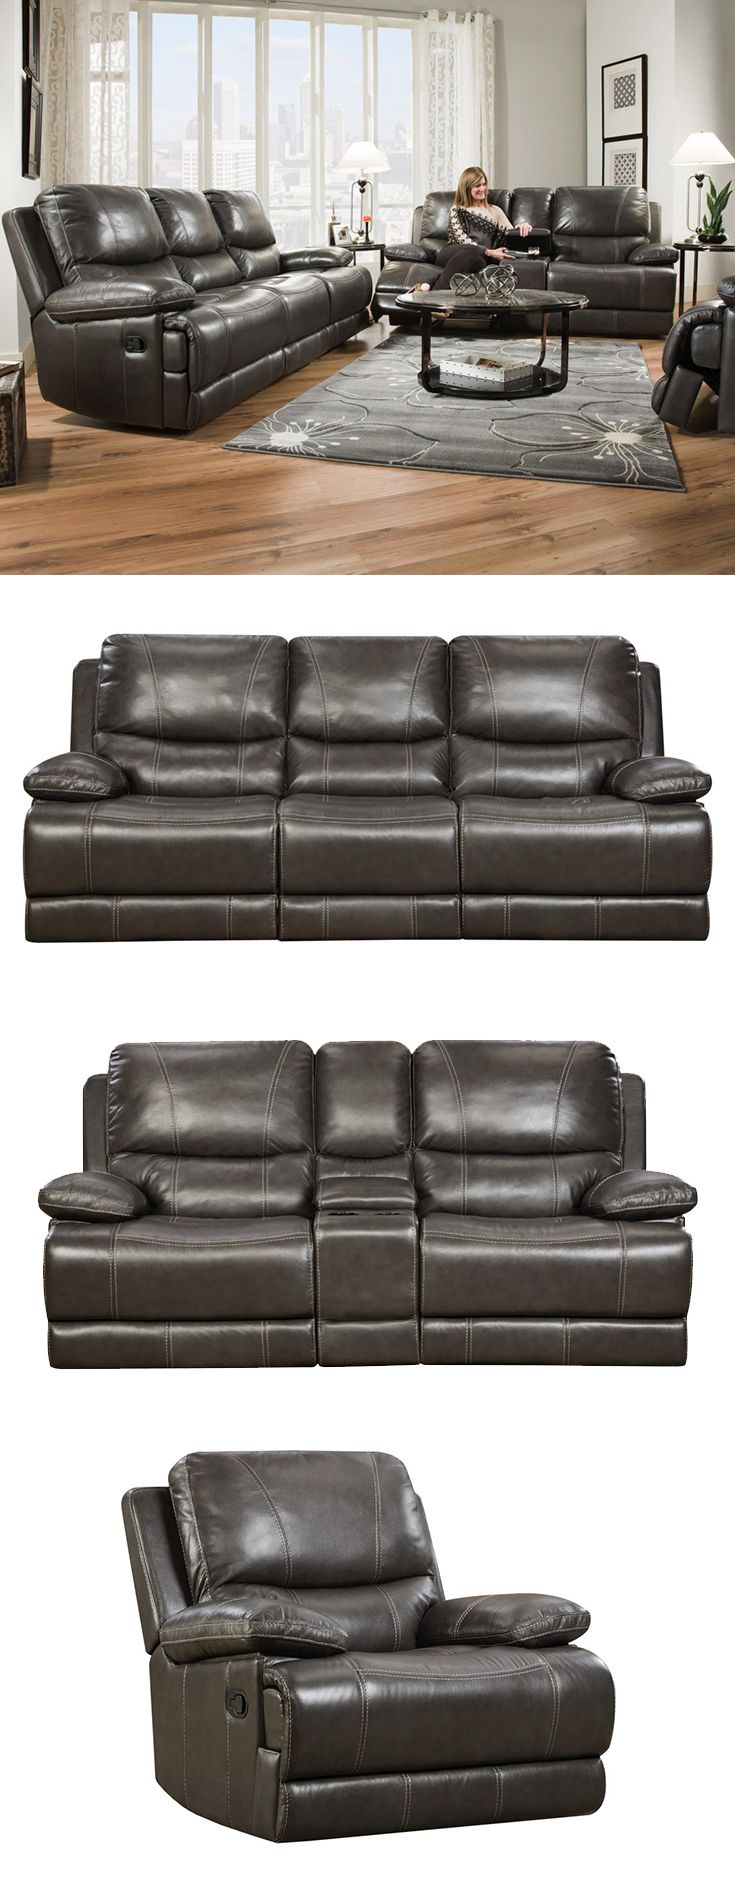 Best This Reclining Sofa Will Allow You To Watch Tv And Movies 640 x 480